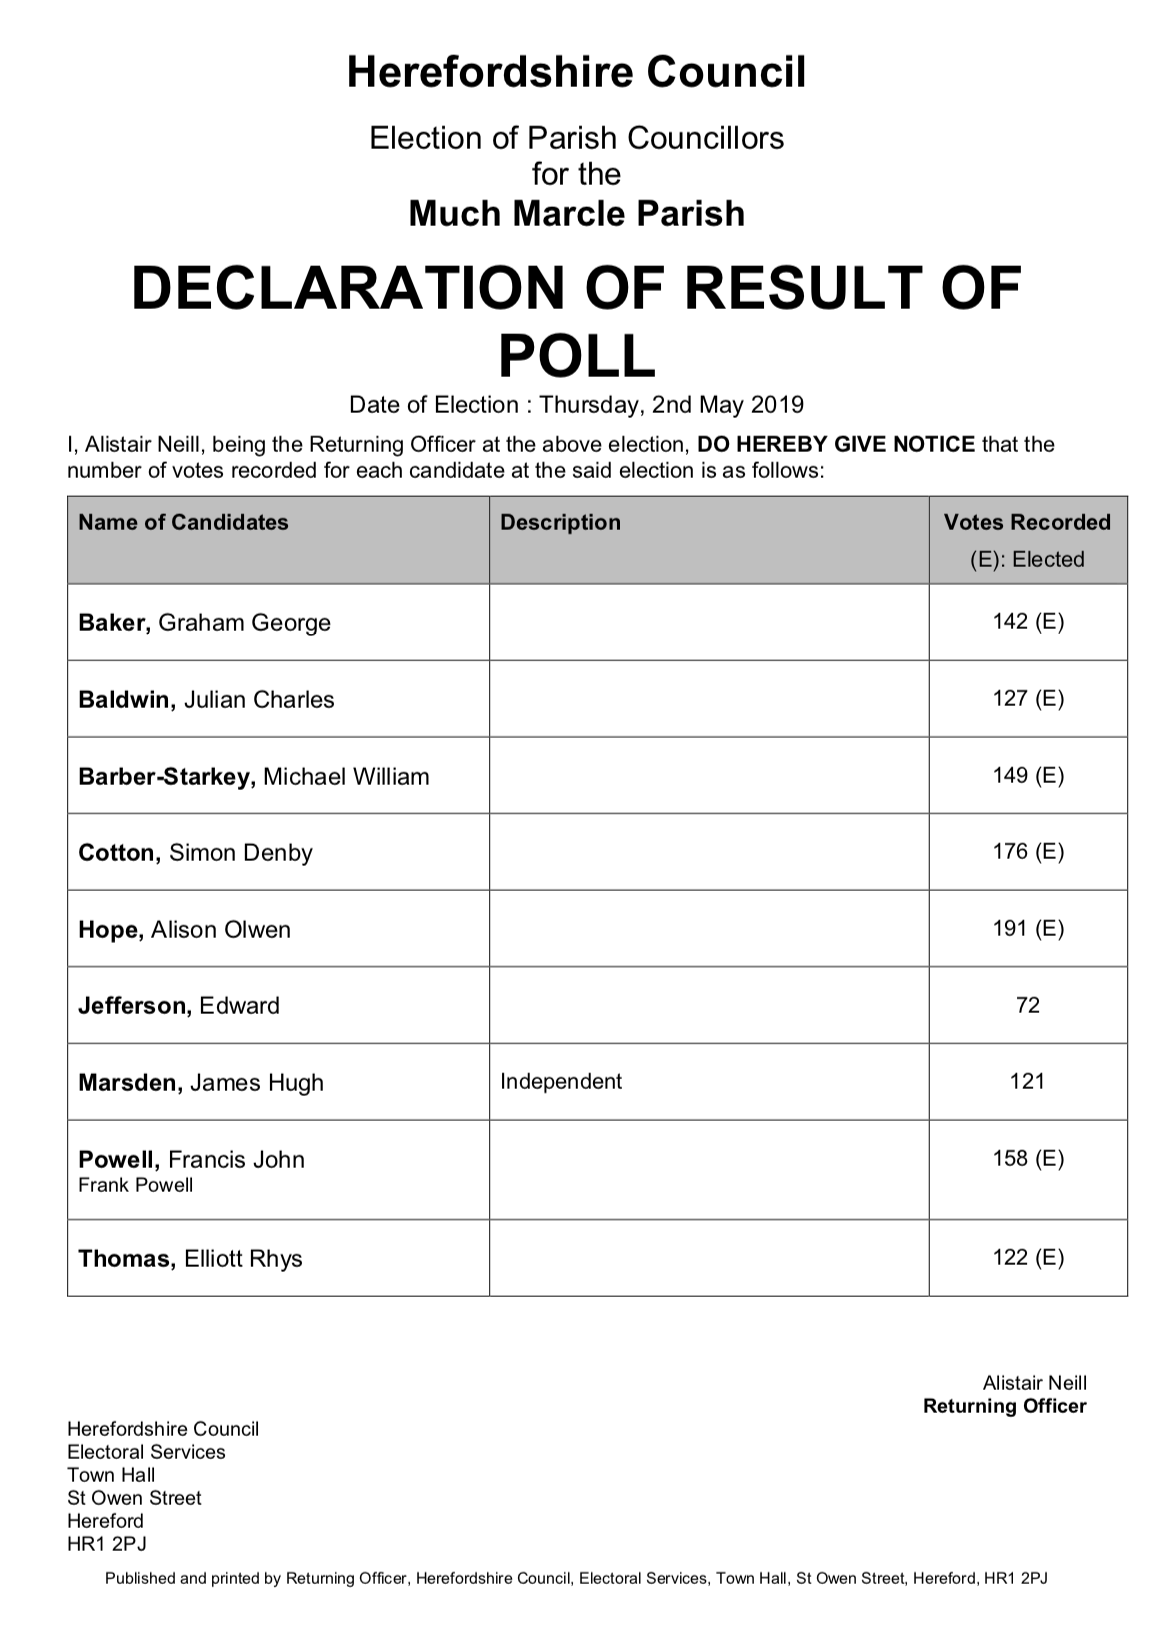 Declaration of interest in poll preview